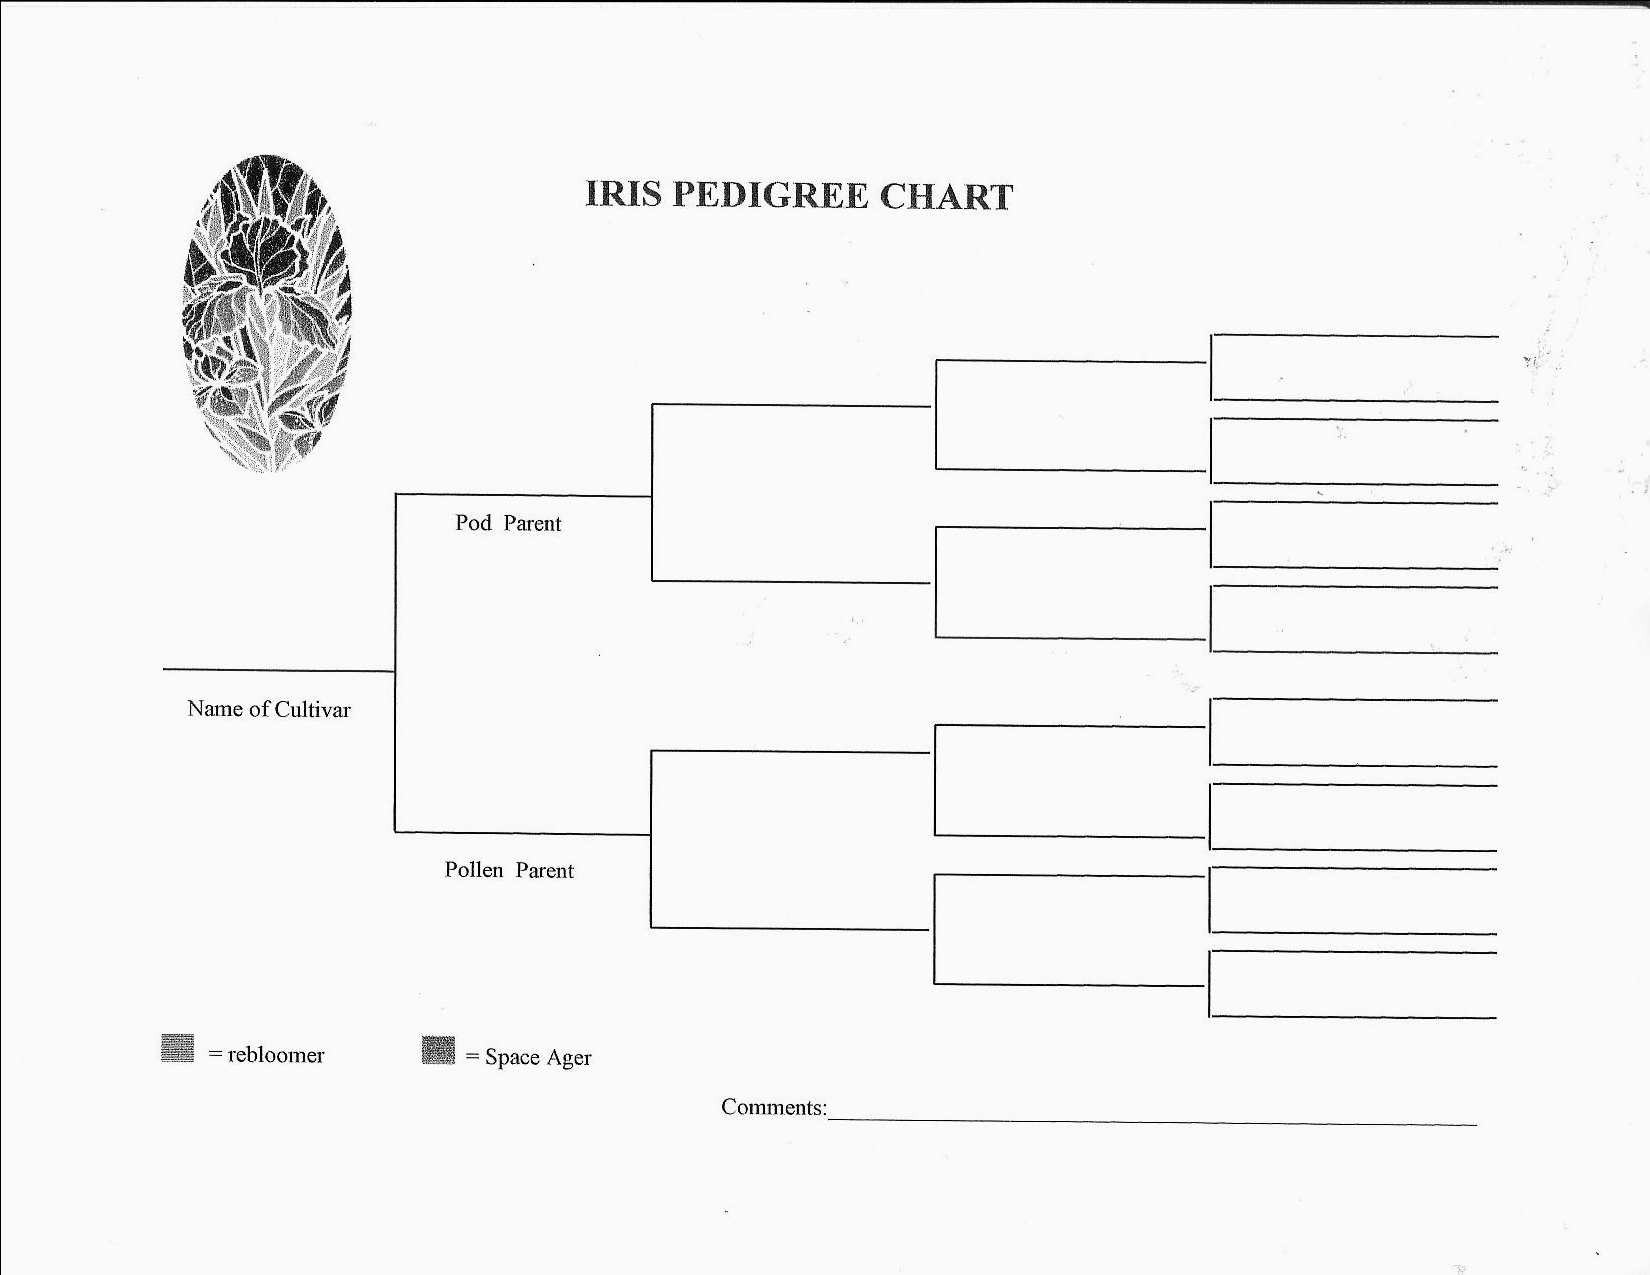 Re: Iris Pedigree - see blank chart /attachment